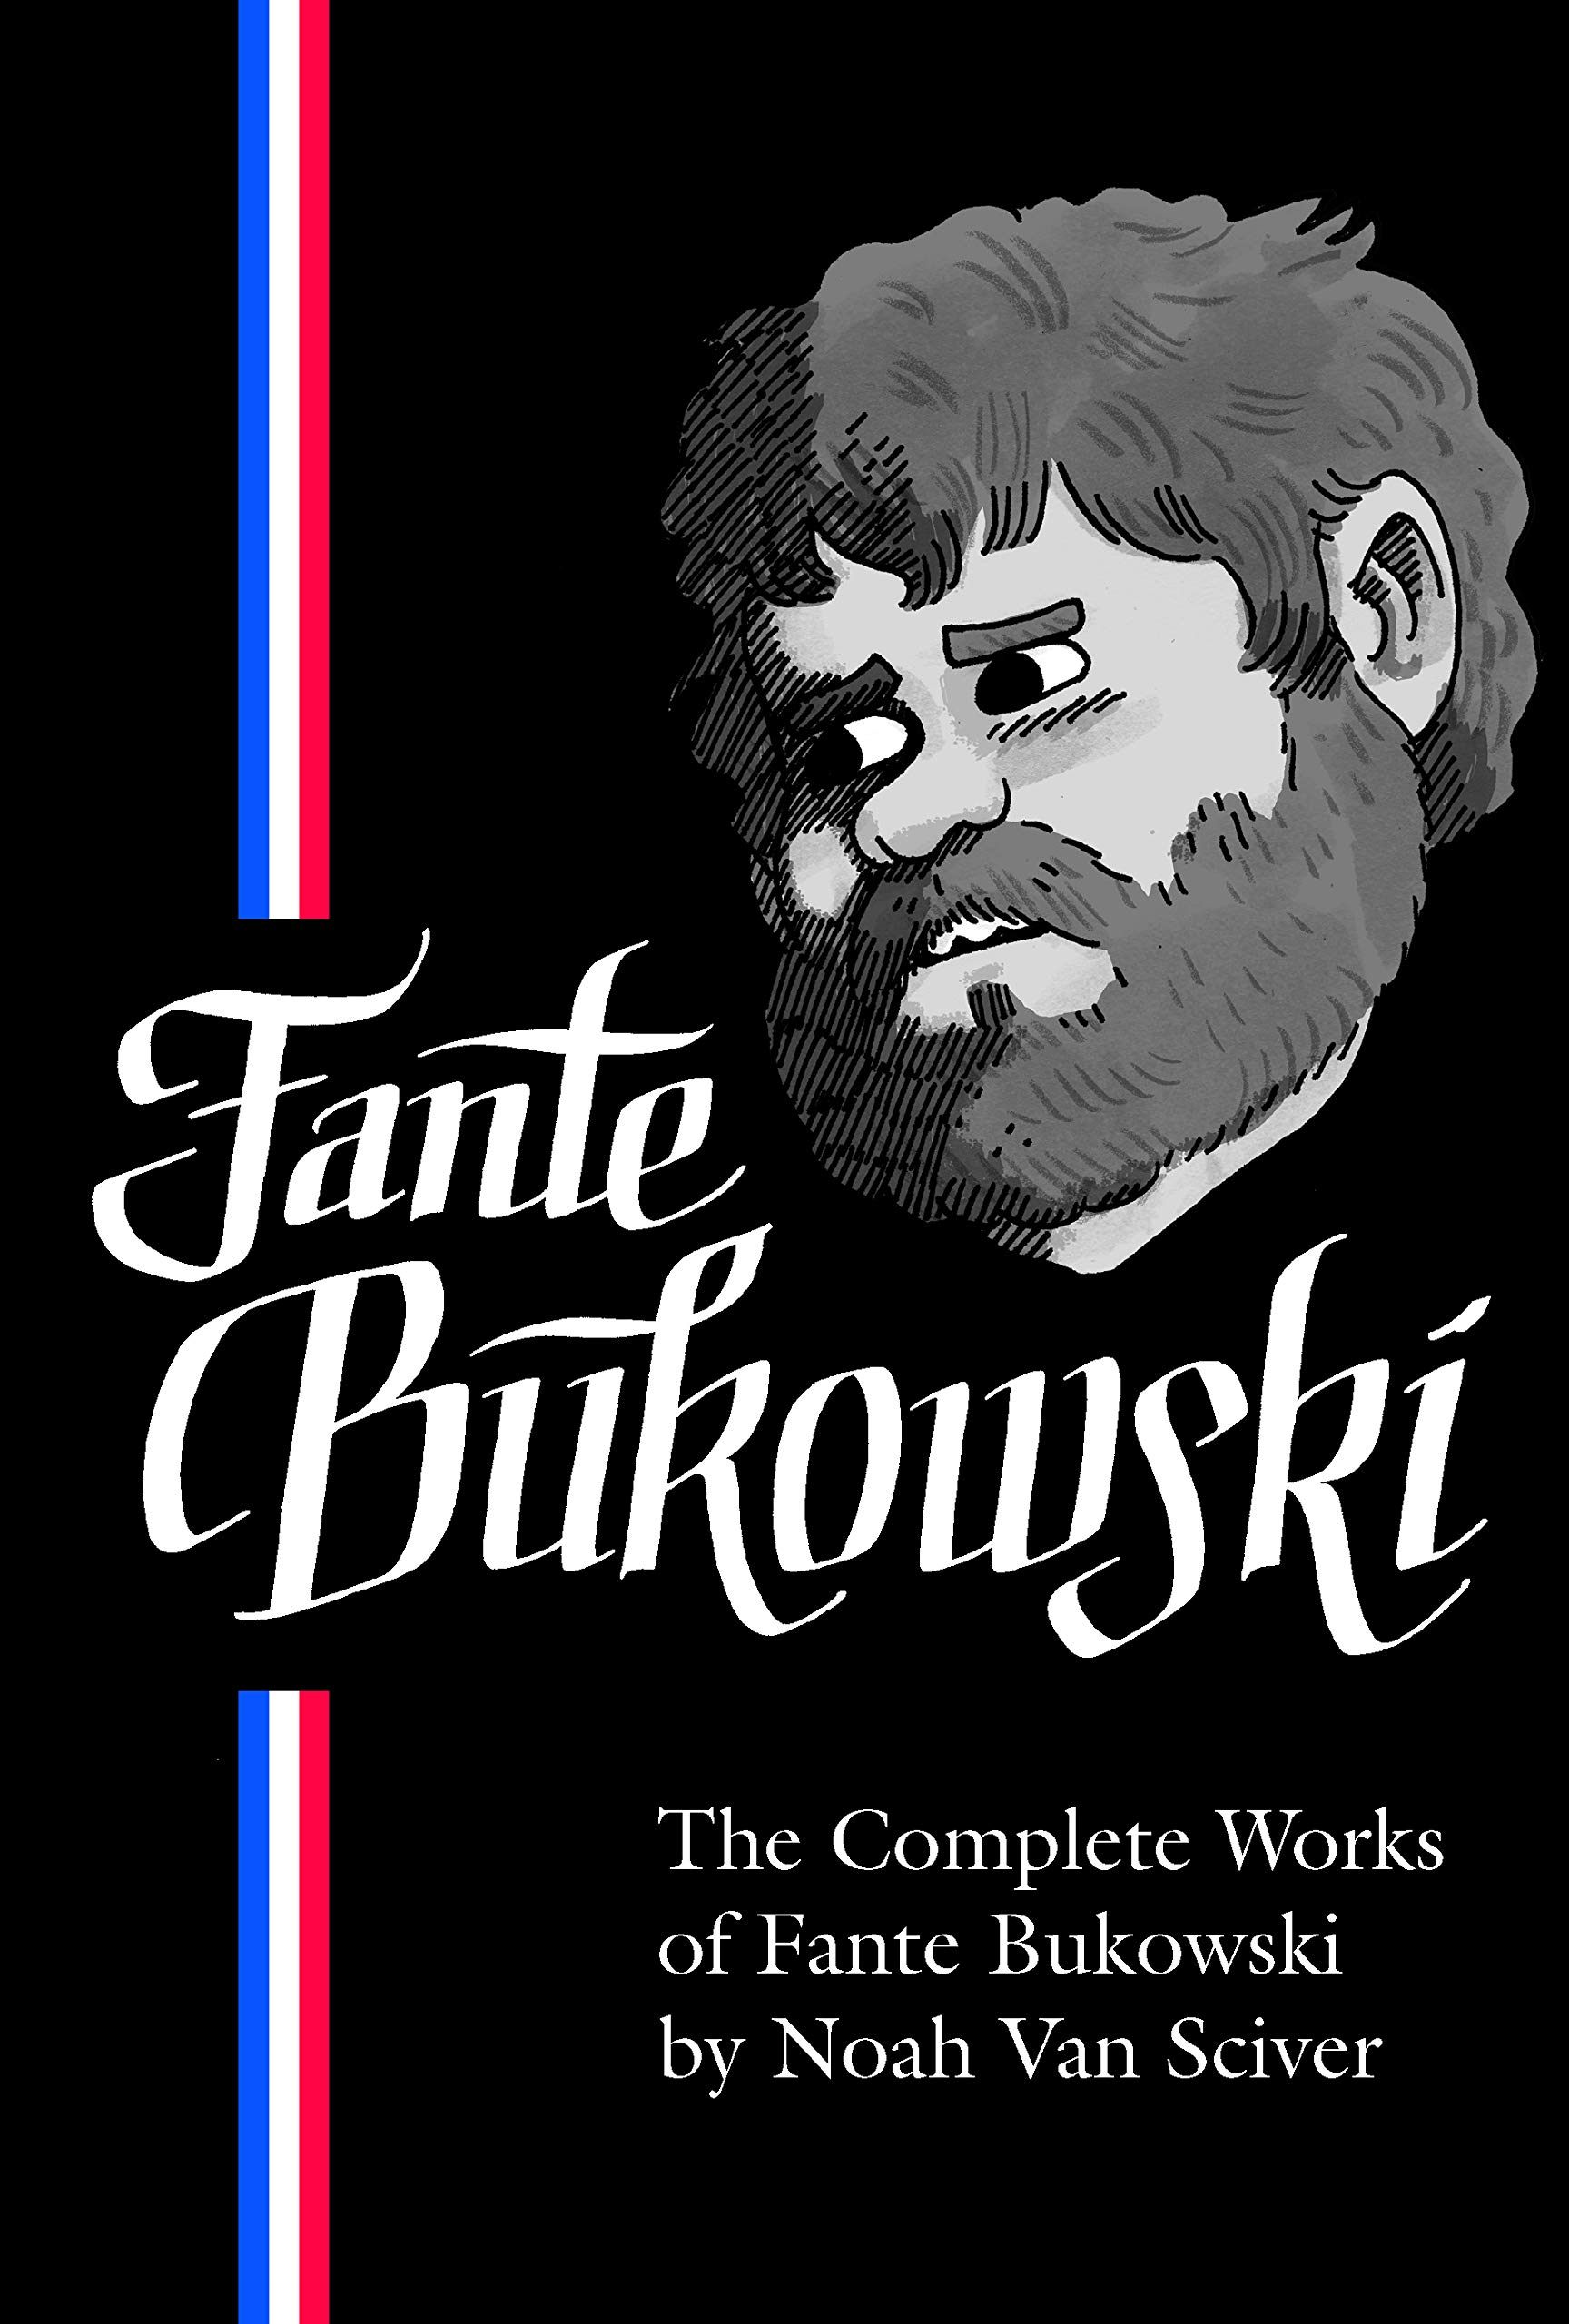 Graphic Novels for Winter 2020: The Complete Works of Fante Bukowski